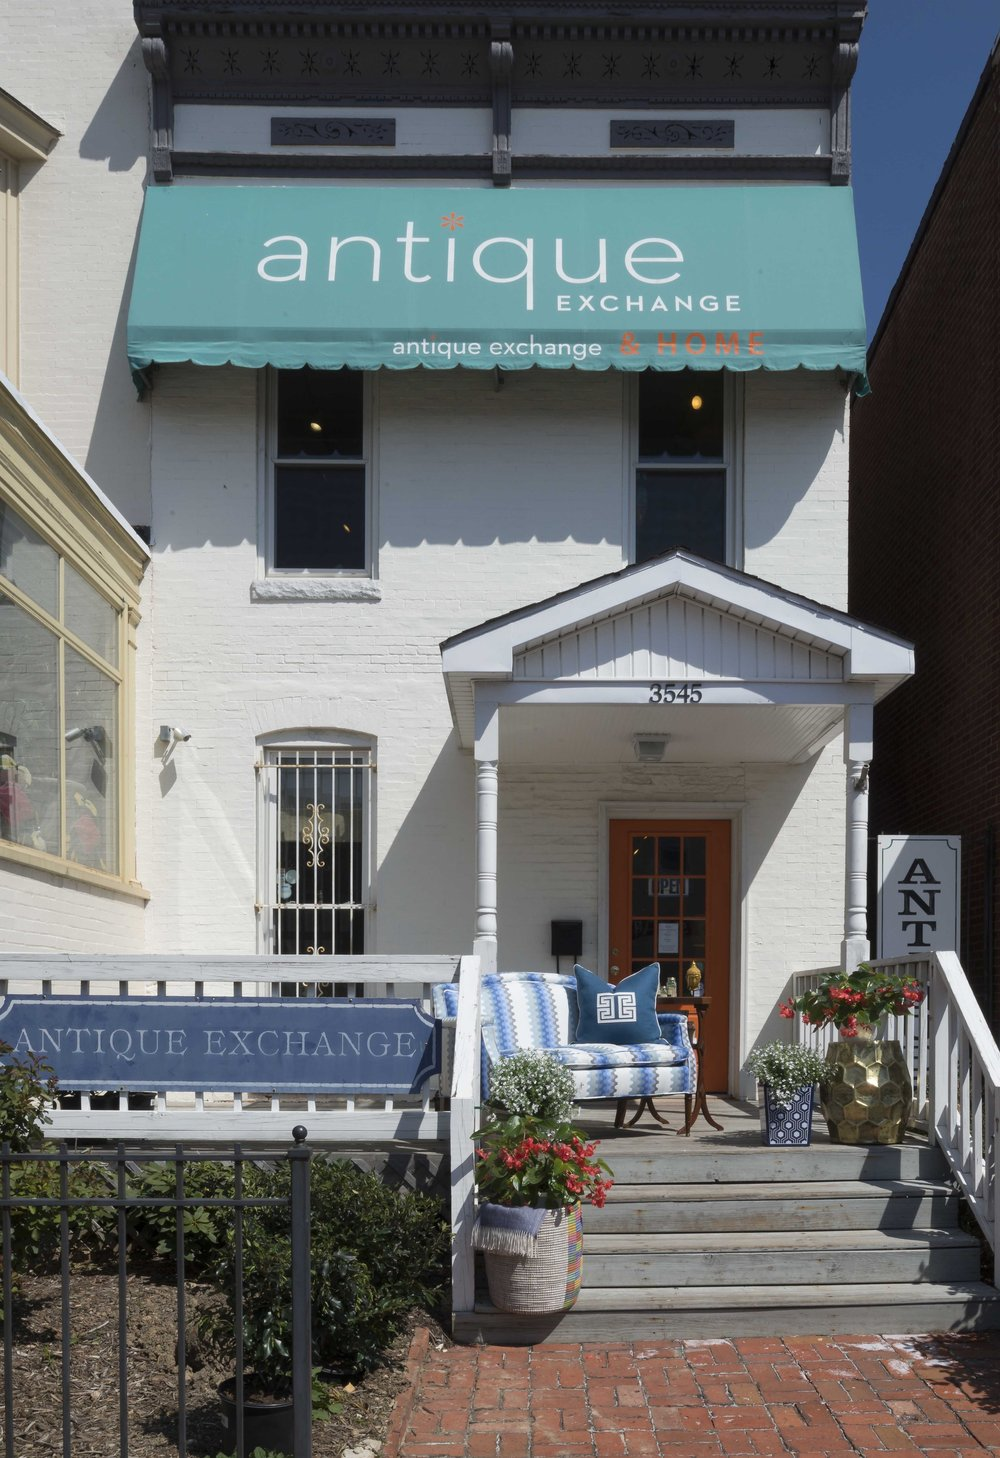 Antique Exchange Has Been In Business For Over Thirty Years, Growing From A  Small Antique Store To A Two Story Venue. While You Will Find Many Antique  ...